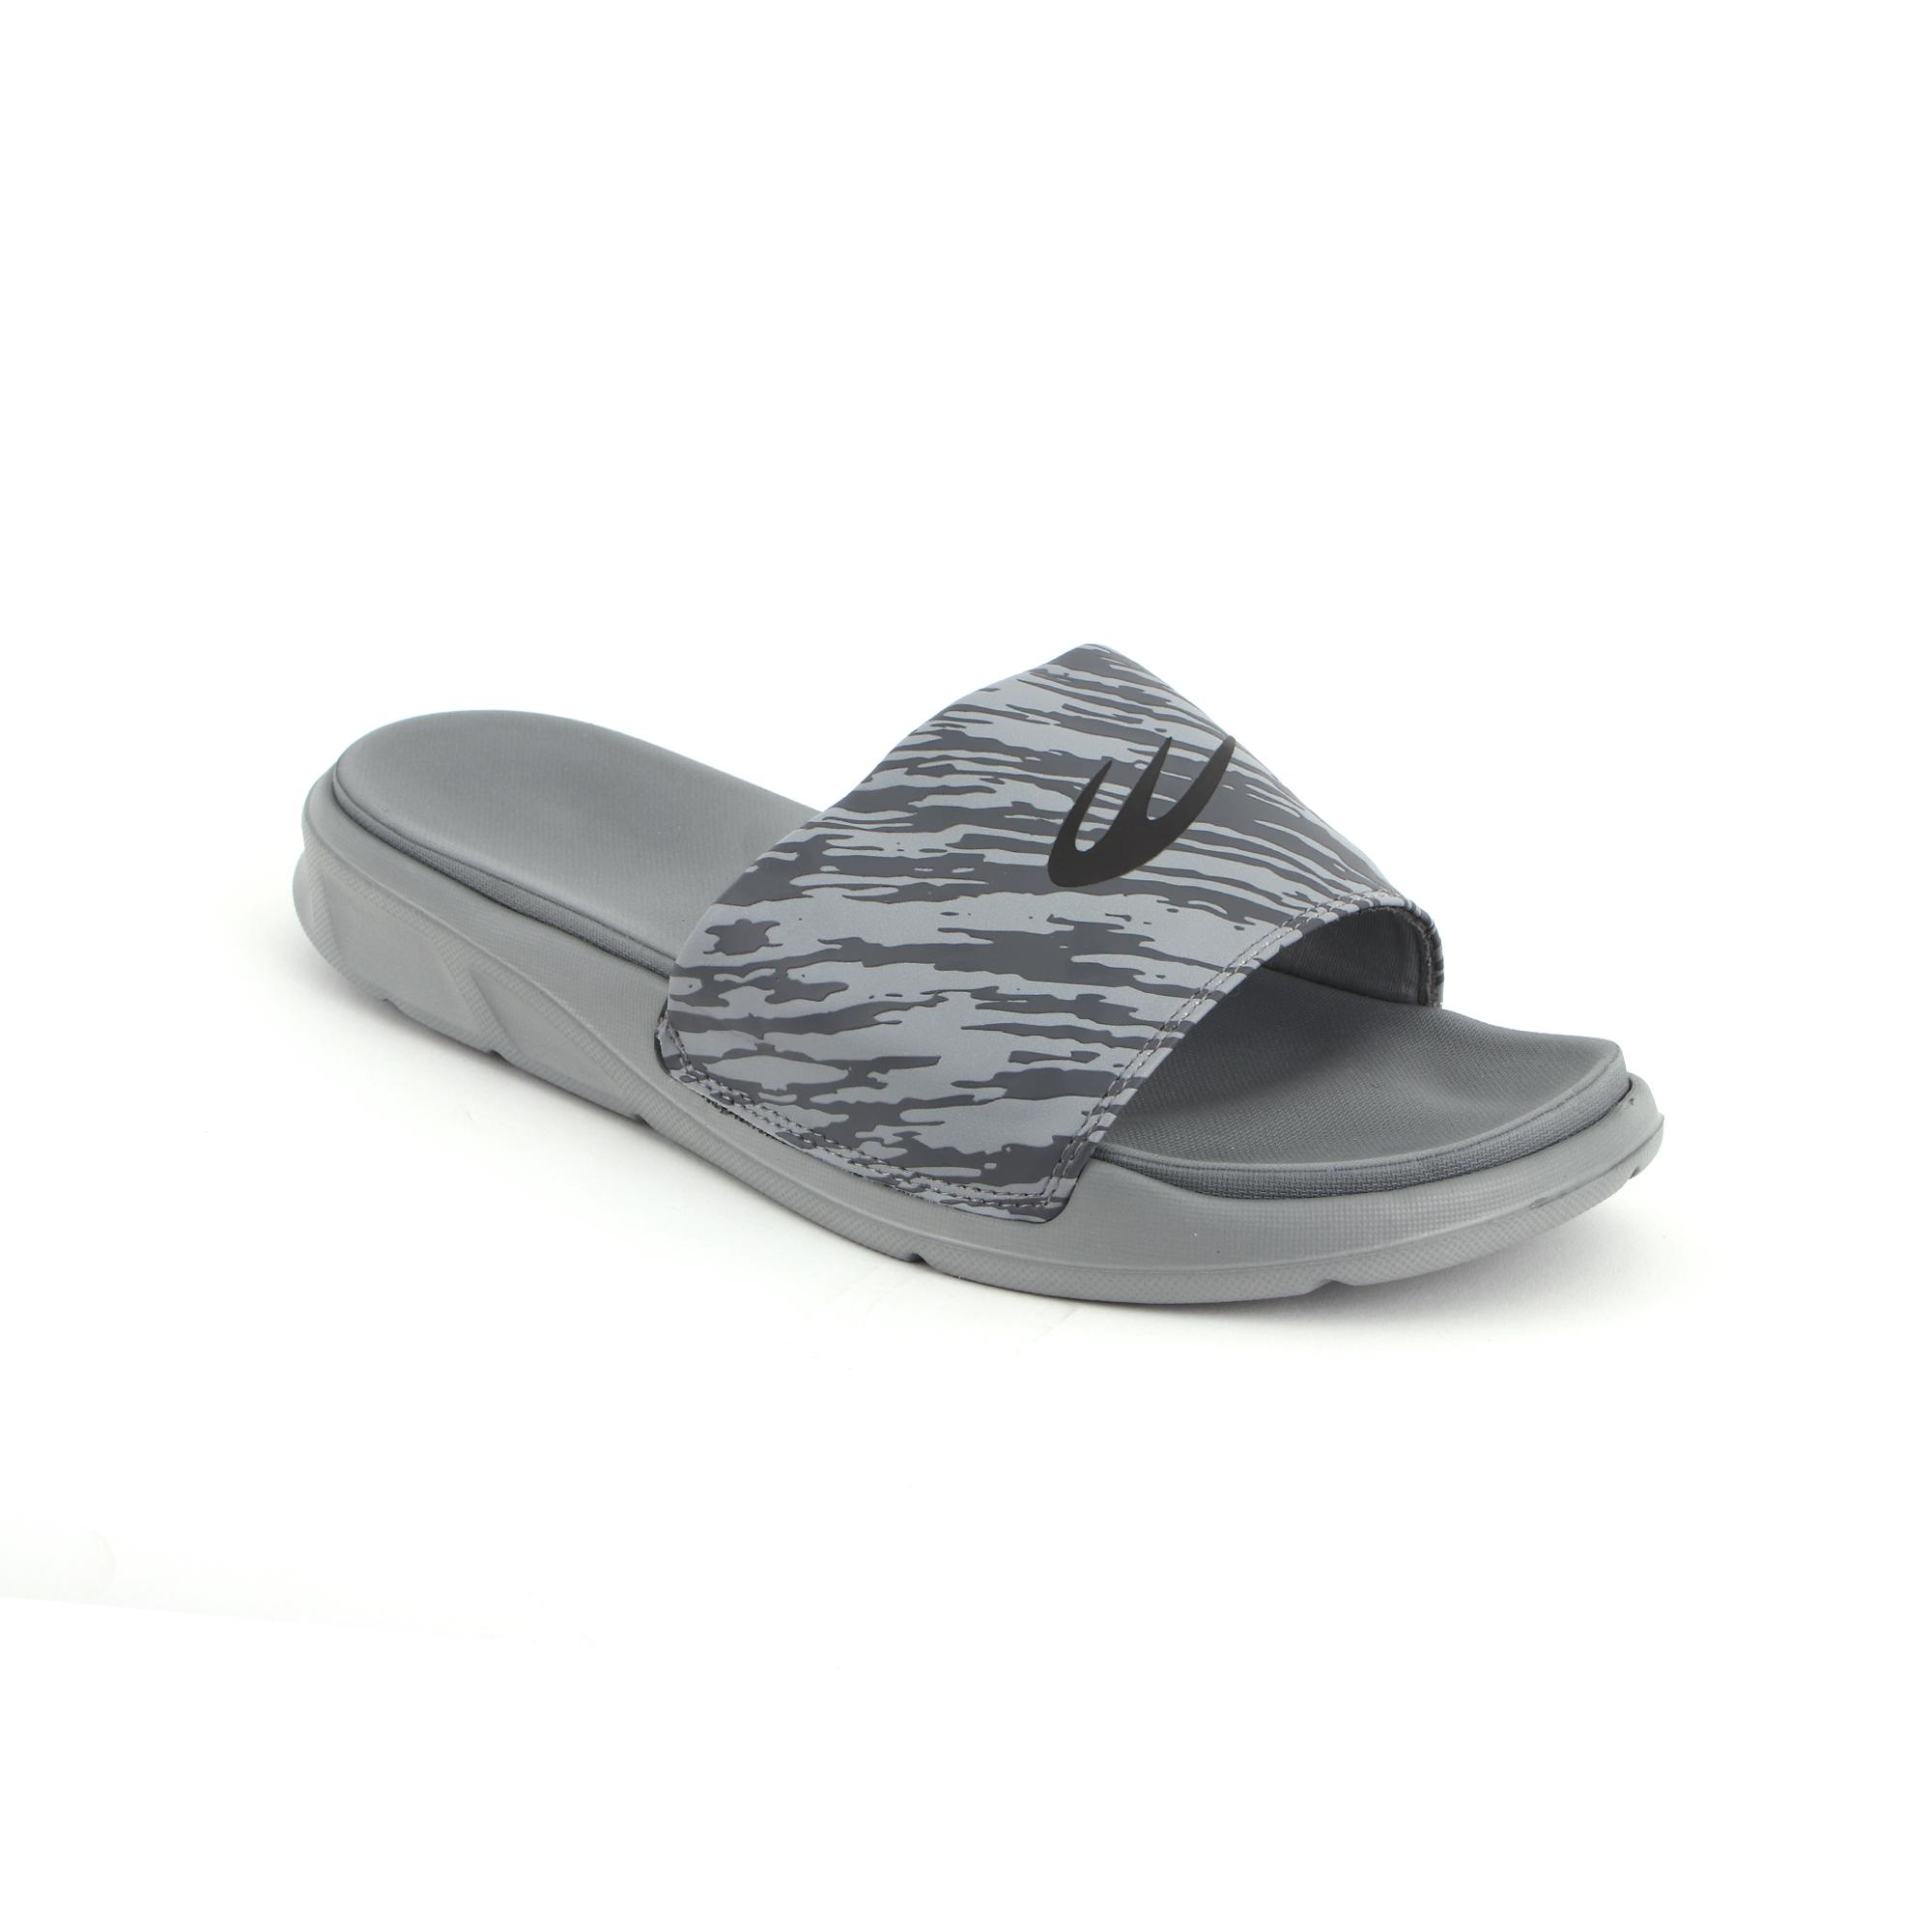 6ca5abae4 Slides for Men for sale - Slide Slippers for Men Online Deals ...